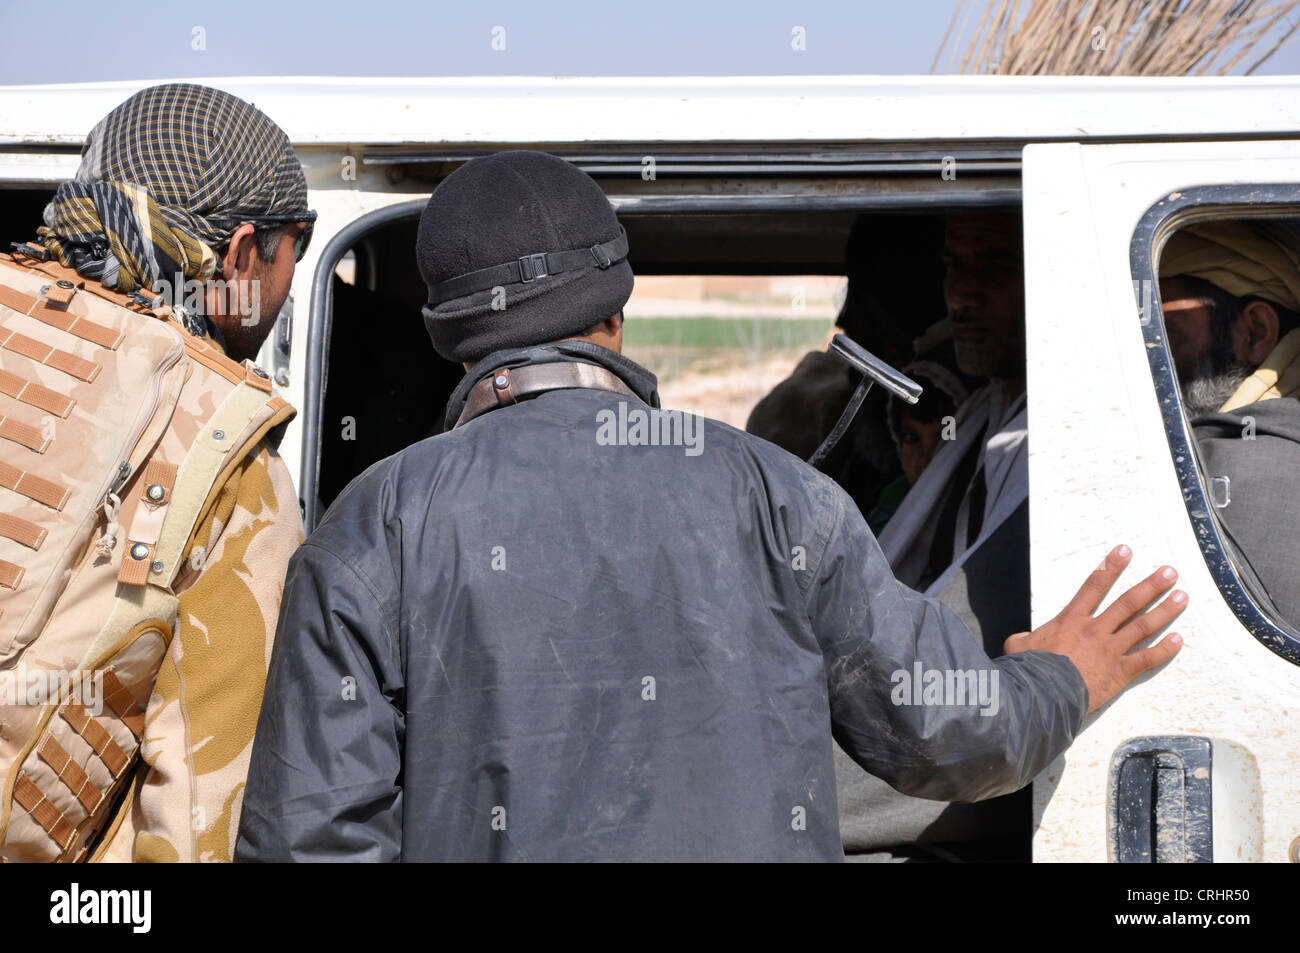 A british interpretor and Afghan policeman ask locals in afghanistan to vacate their vehicle. - Stock Image